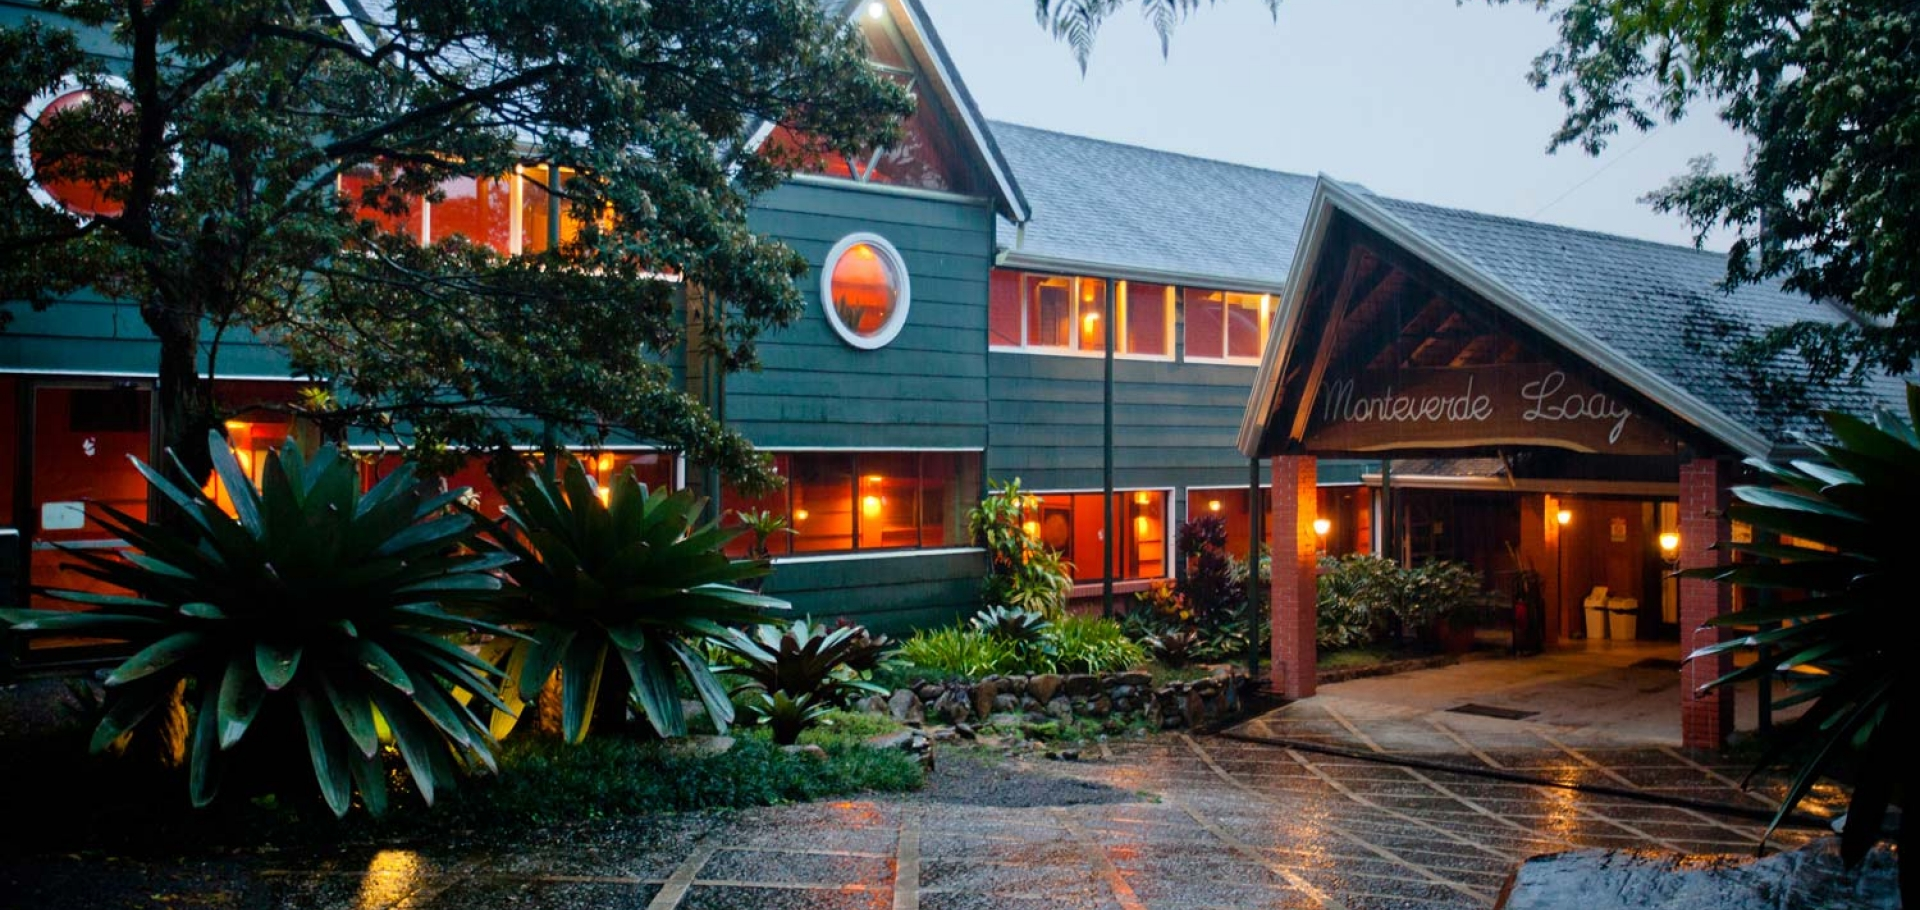 Monteverde Lodge and Gardens